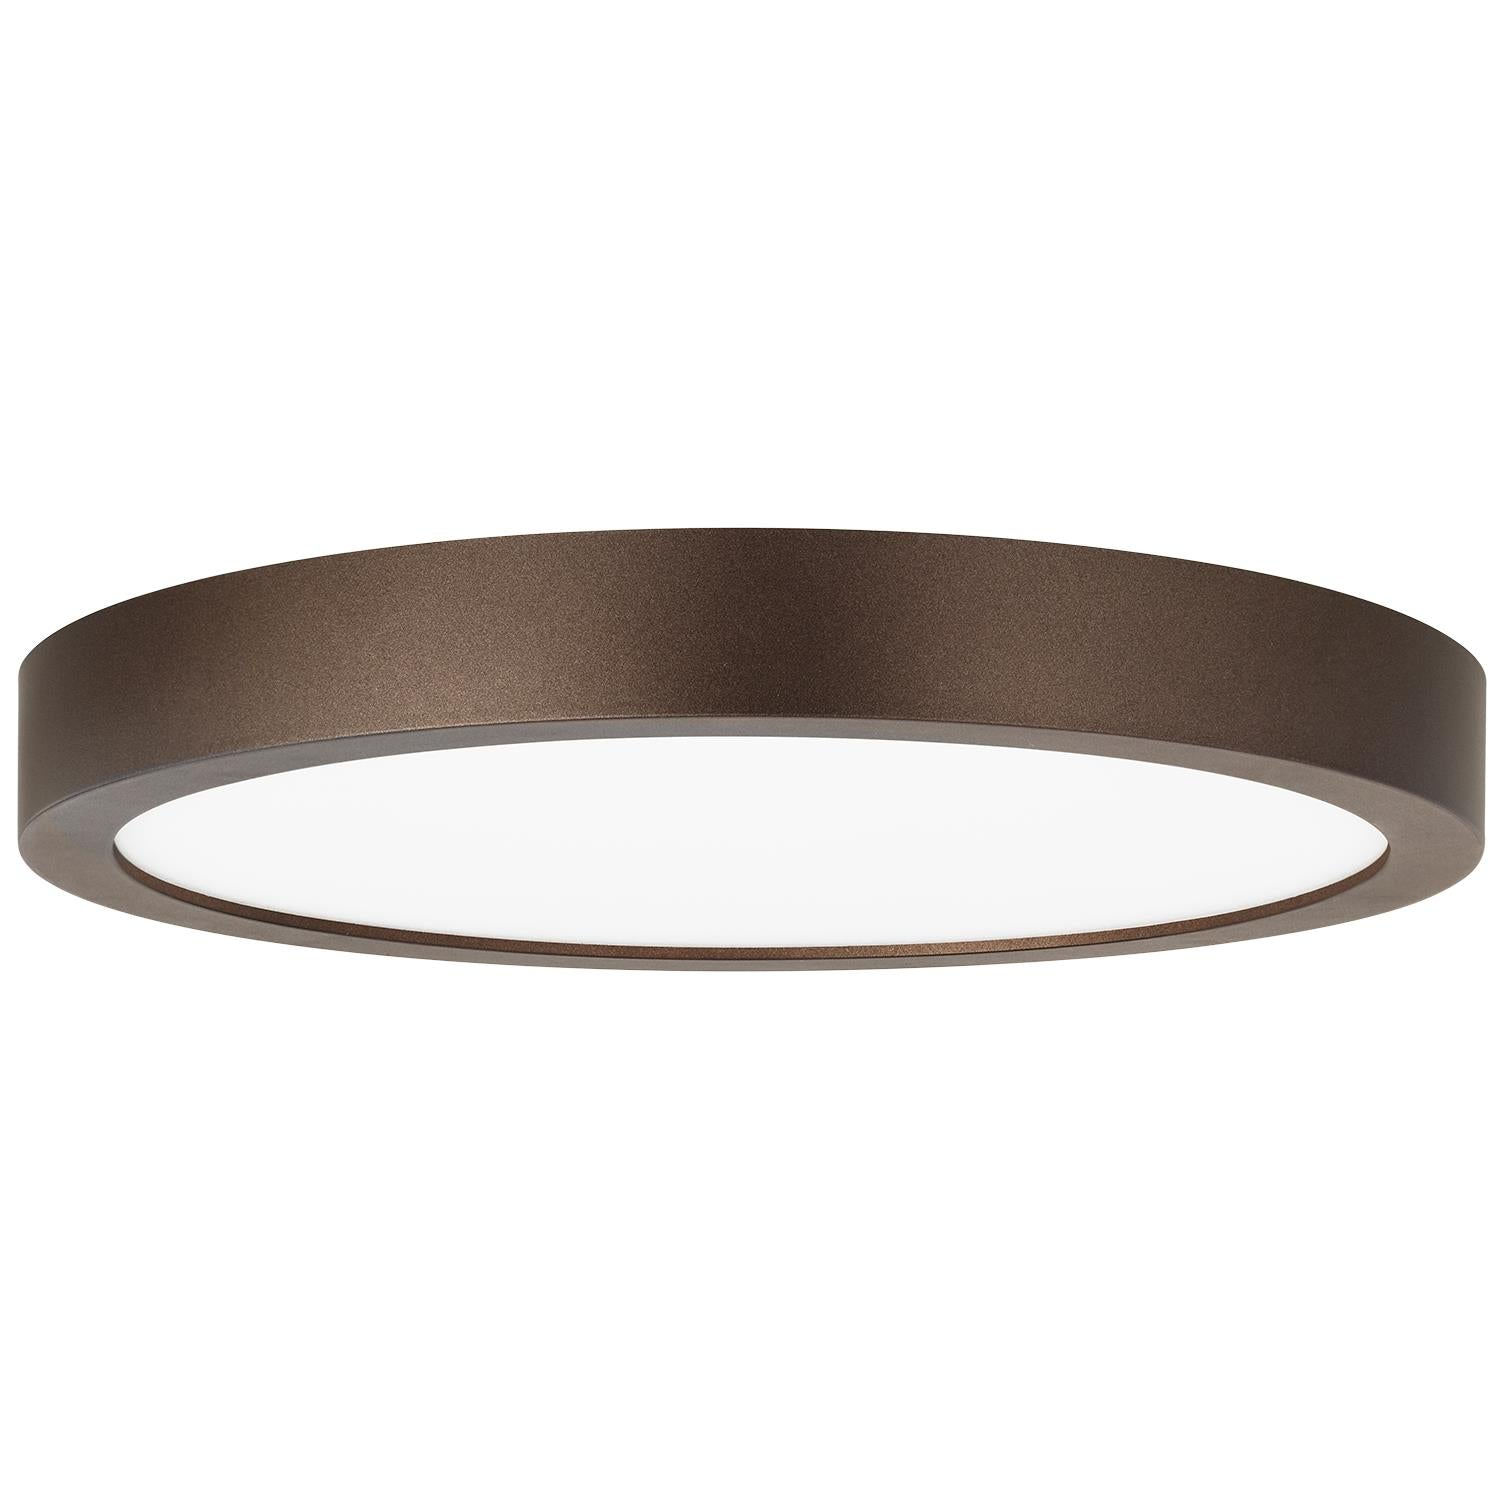 Sunlite 9in. Round LED Mini Flat Panel Fixture, 3000K - Warm White, Bronze Finish